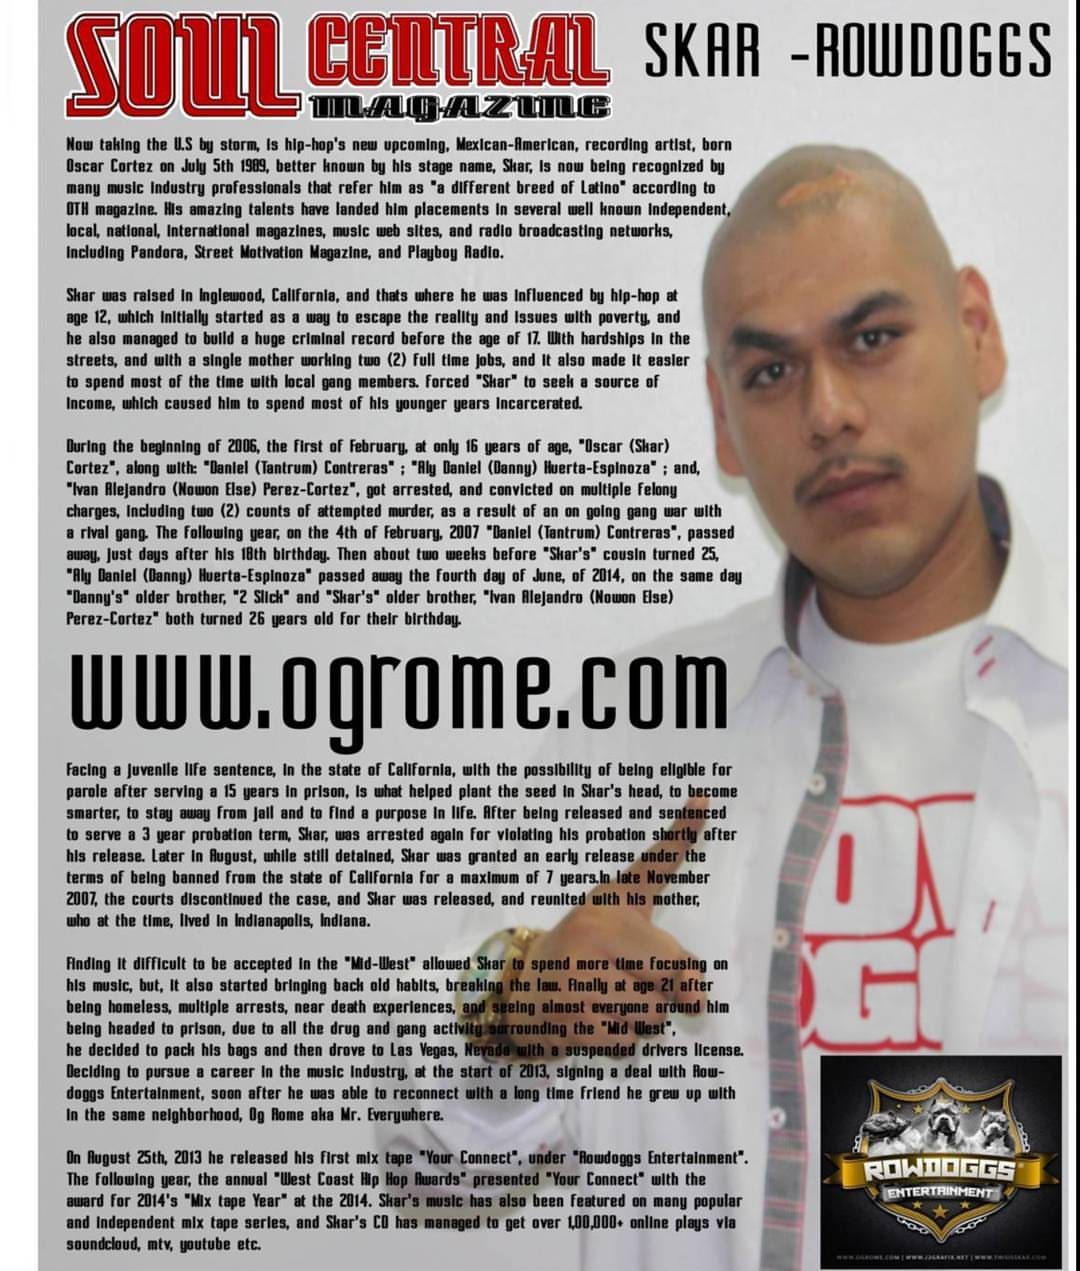 Soul Central Magazine stay showing me love. Available now #Rowdoggs #ThisIsSkar #SoulCentral